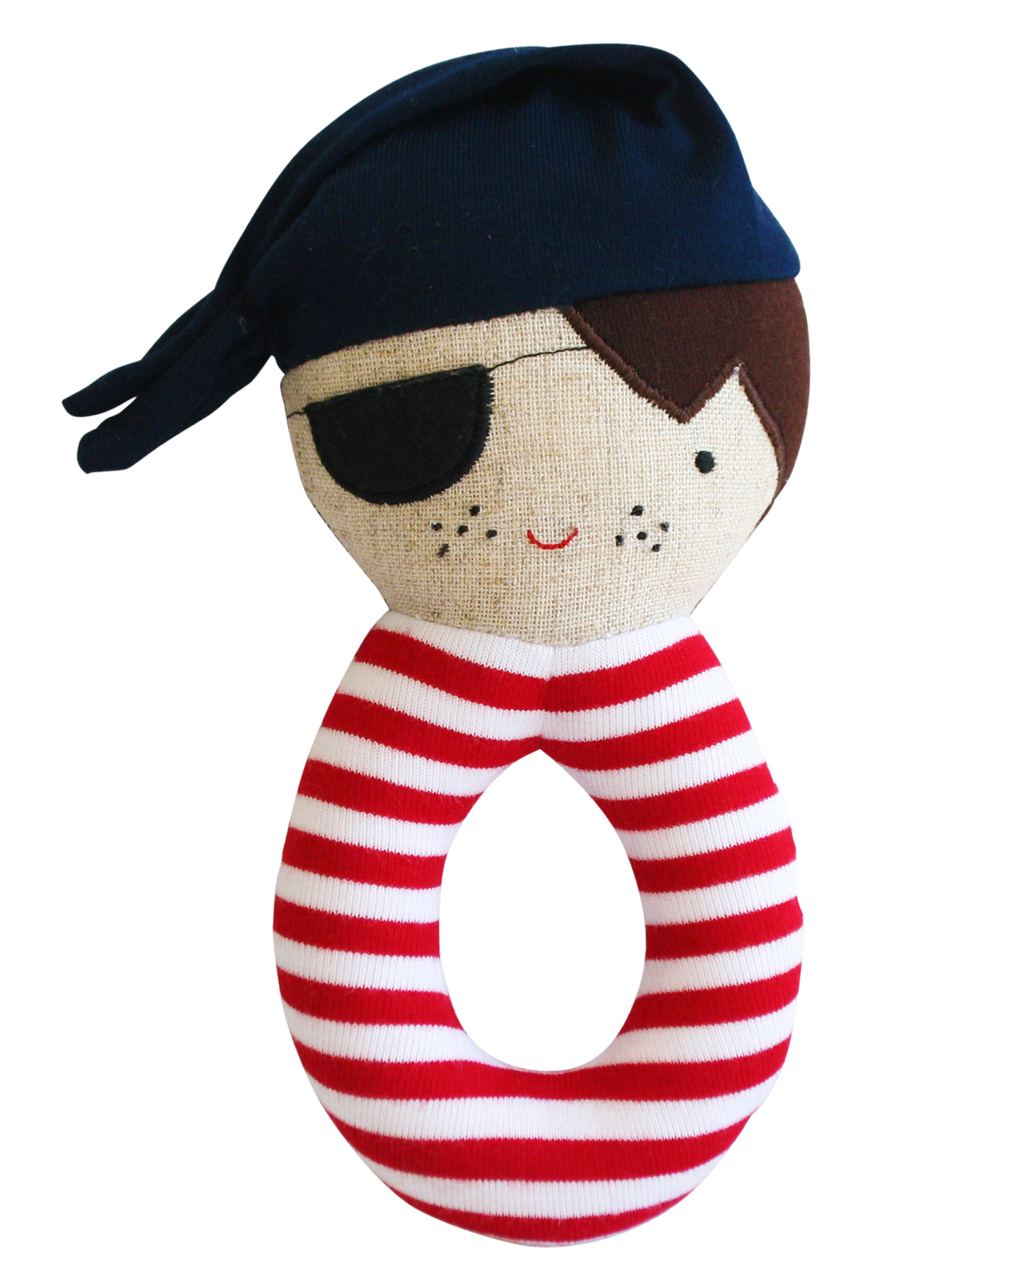 Linen Pirate Grab Rattle in Navy 16cm By Alimrose